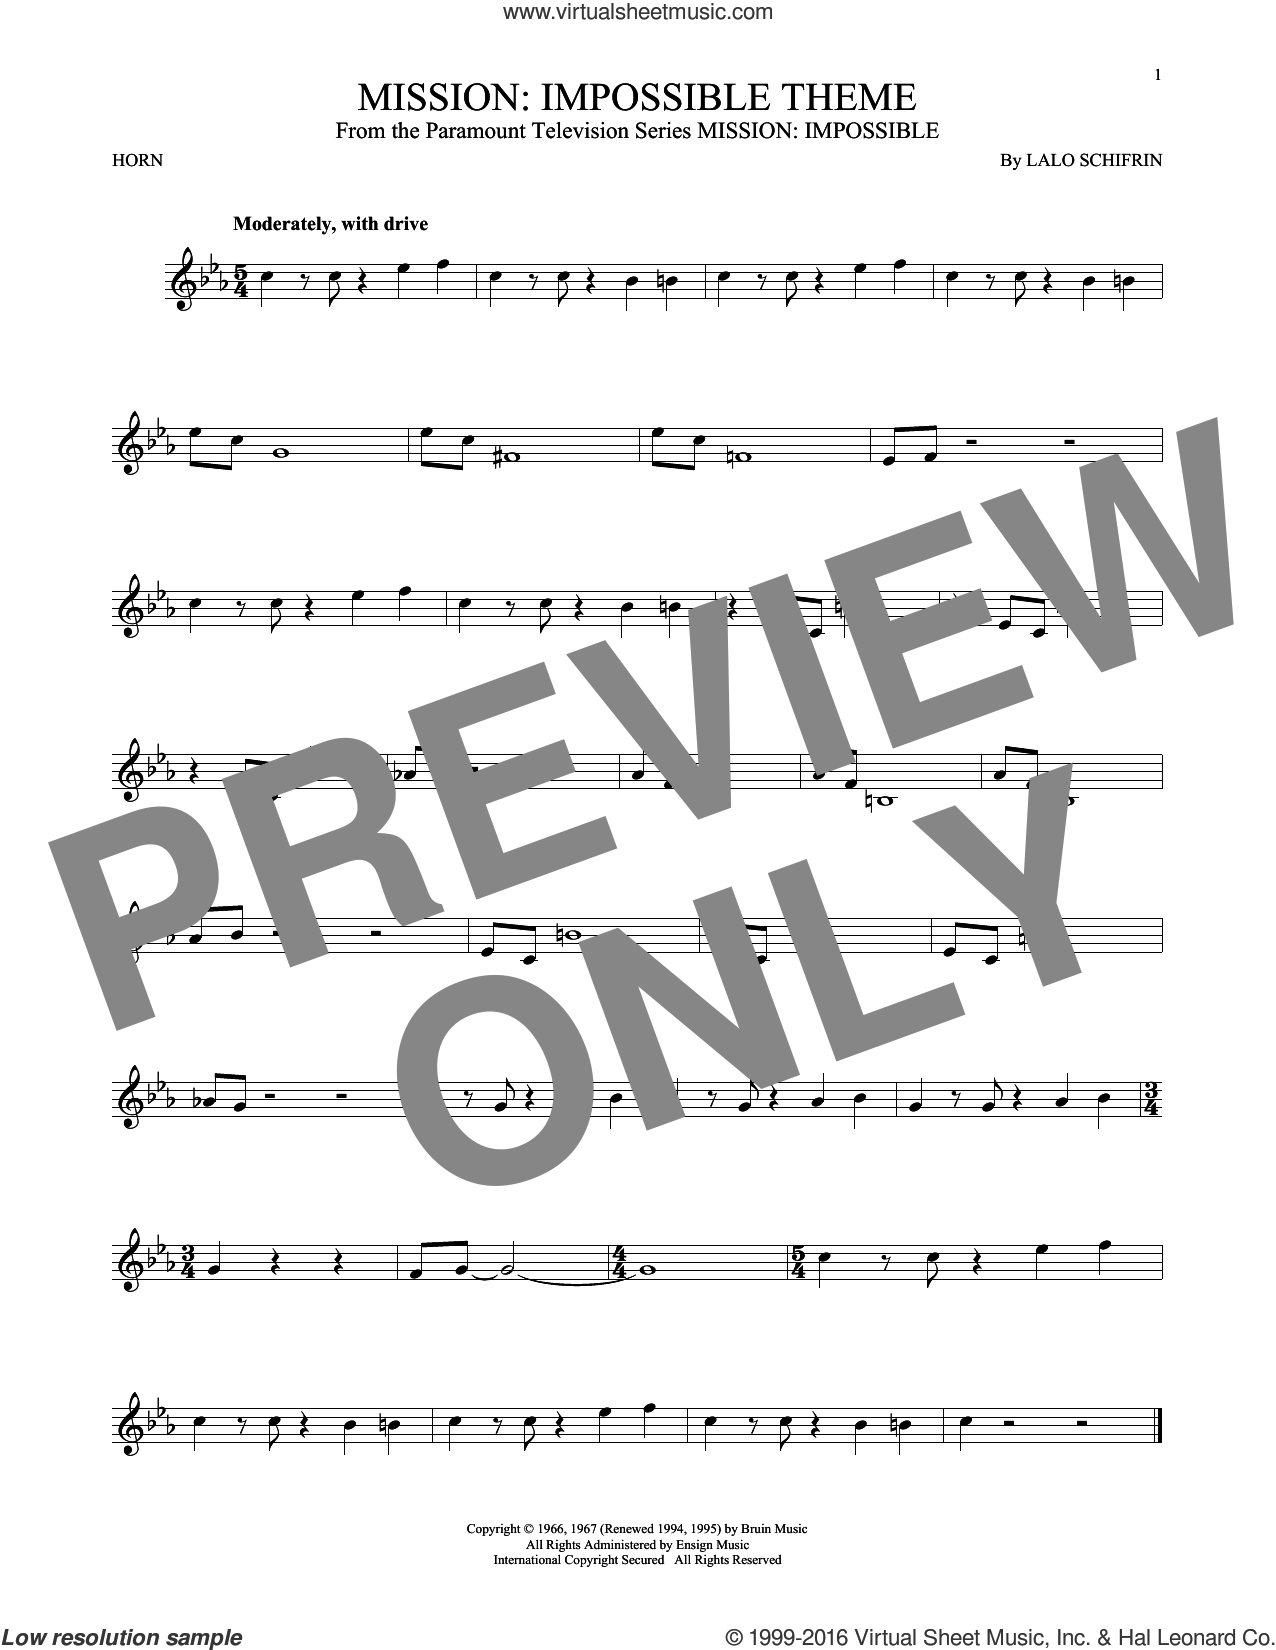 Mission: Impossible Theme sheet music for horn solo by Lalo Schifrin, intermediate skill level